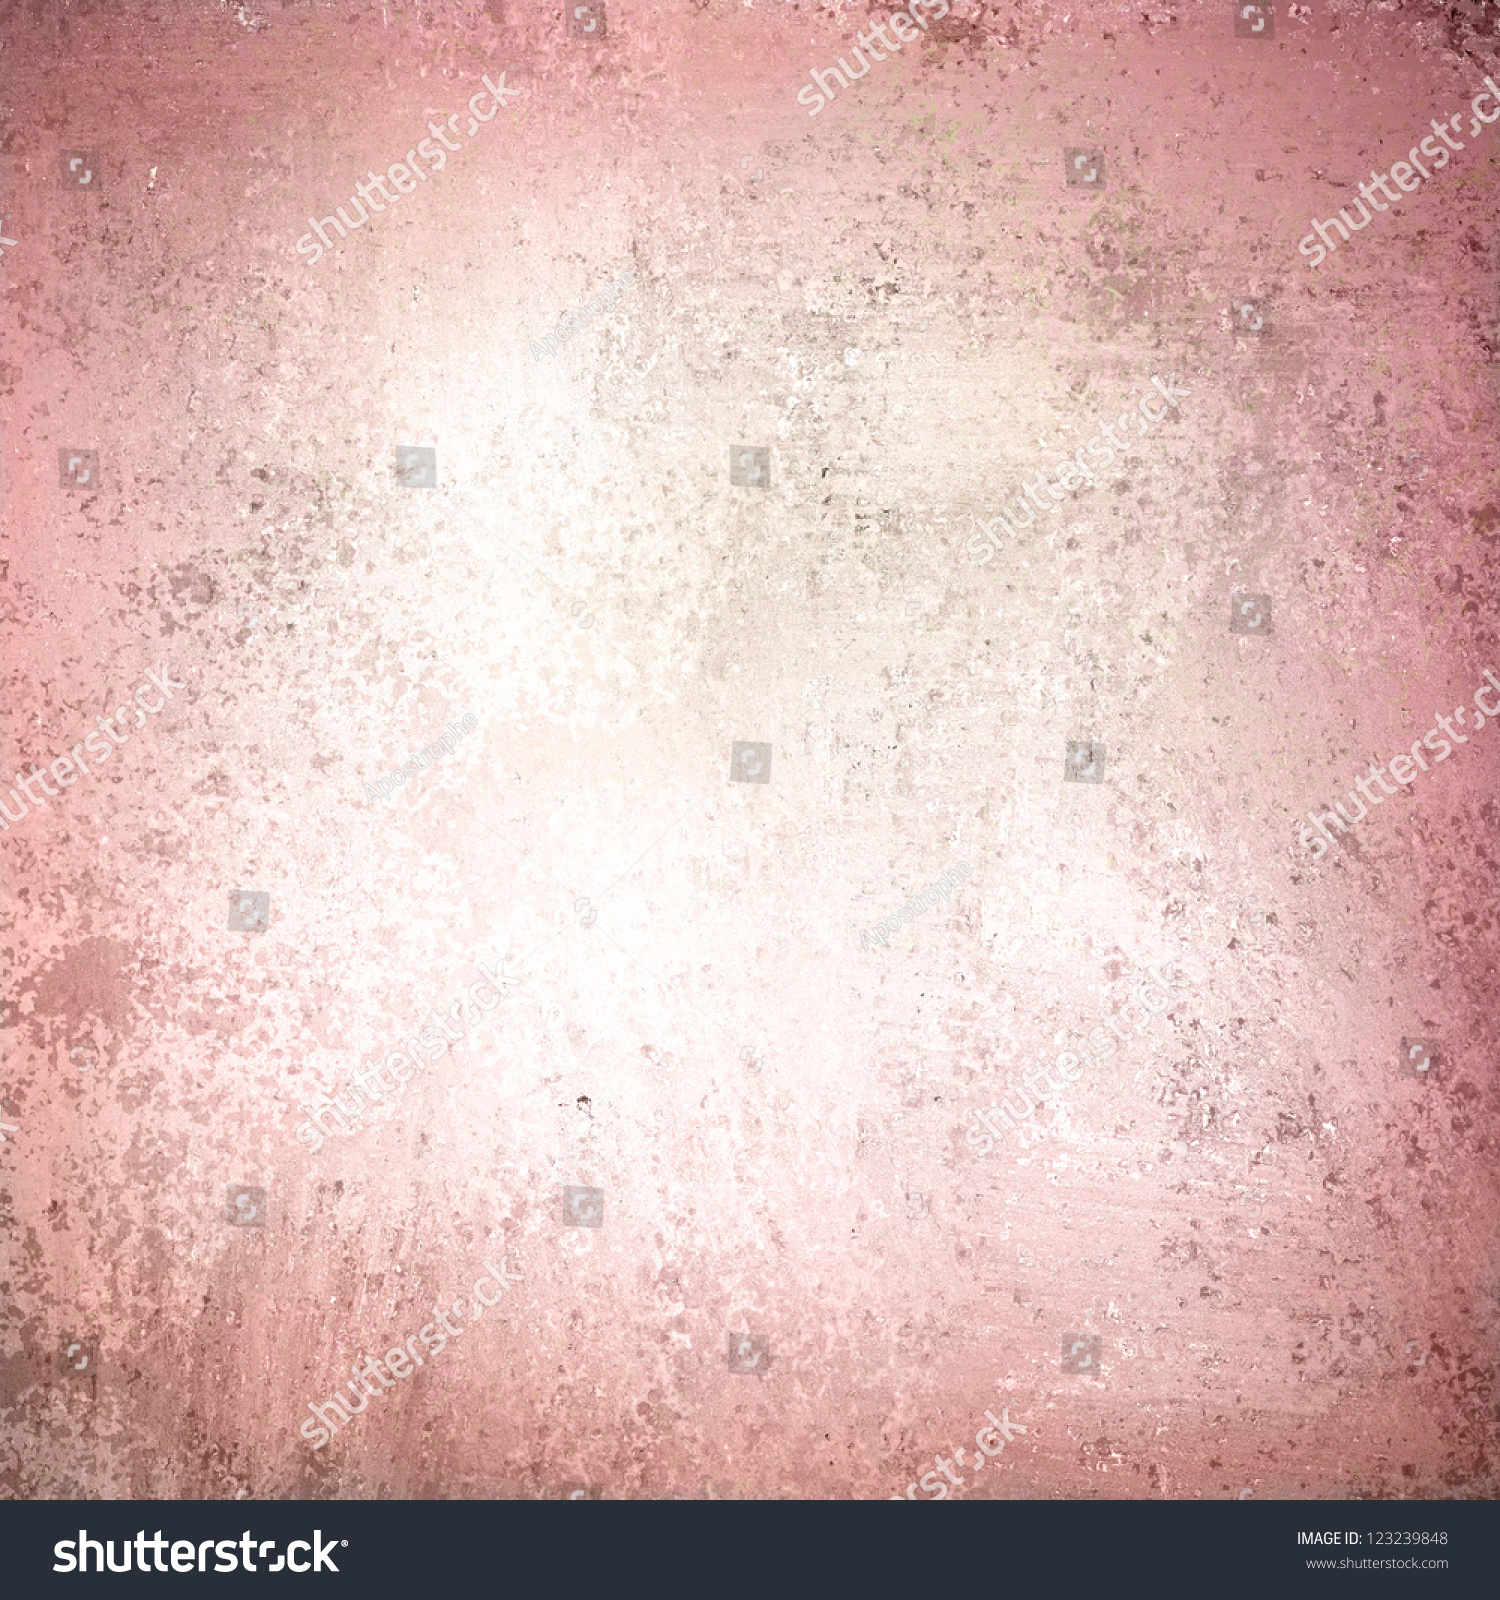 Website soft colors - Abstract Pink Background Gray Color Soft Valentine Background Of Vintage Grunge Background Texture White Center